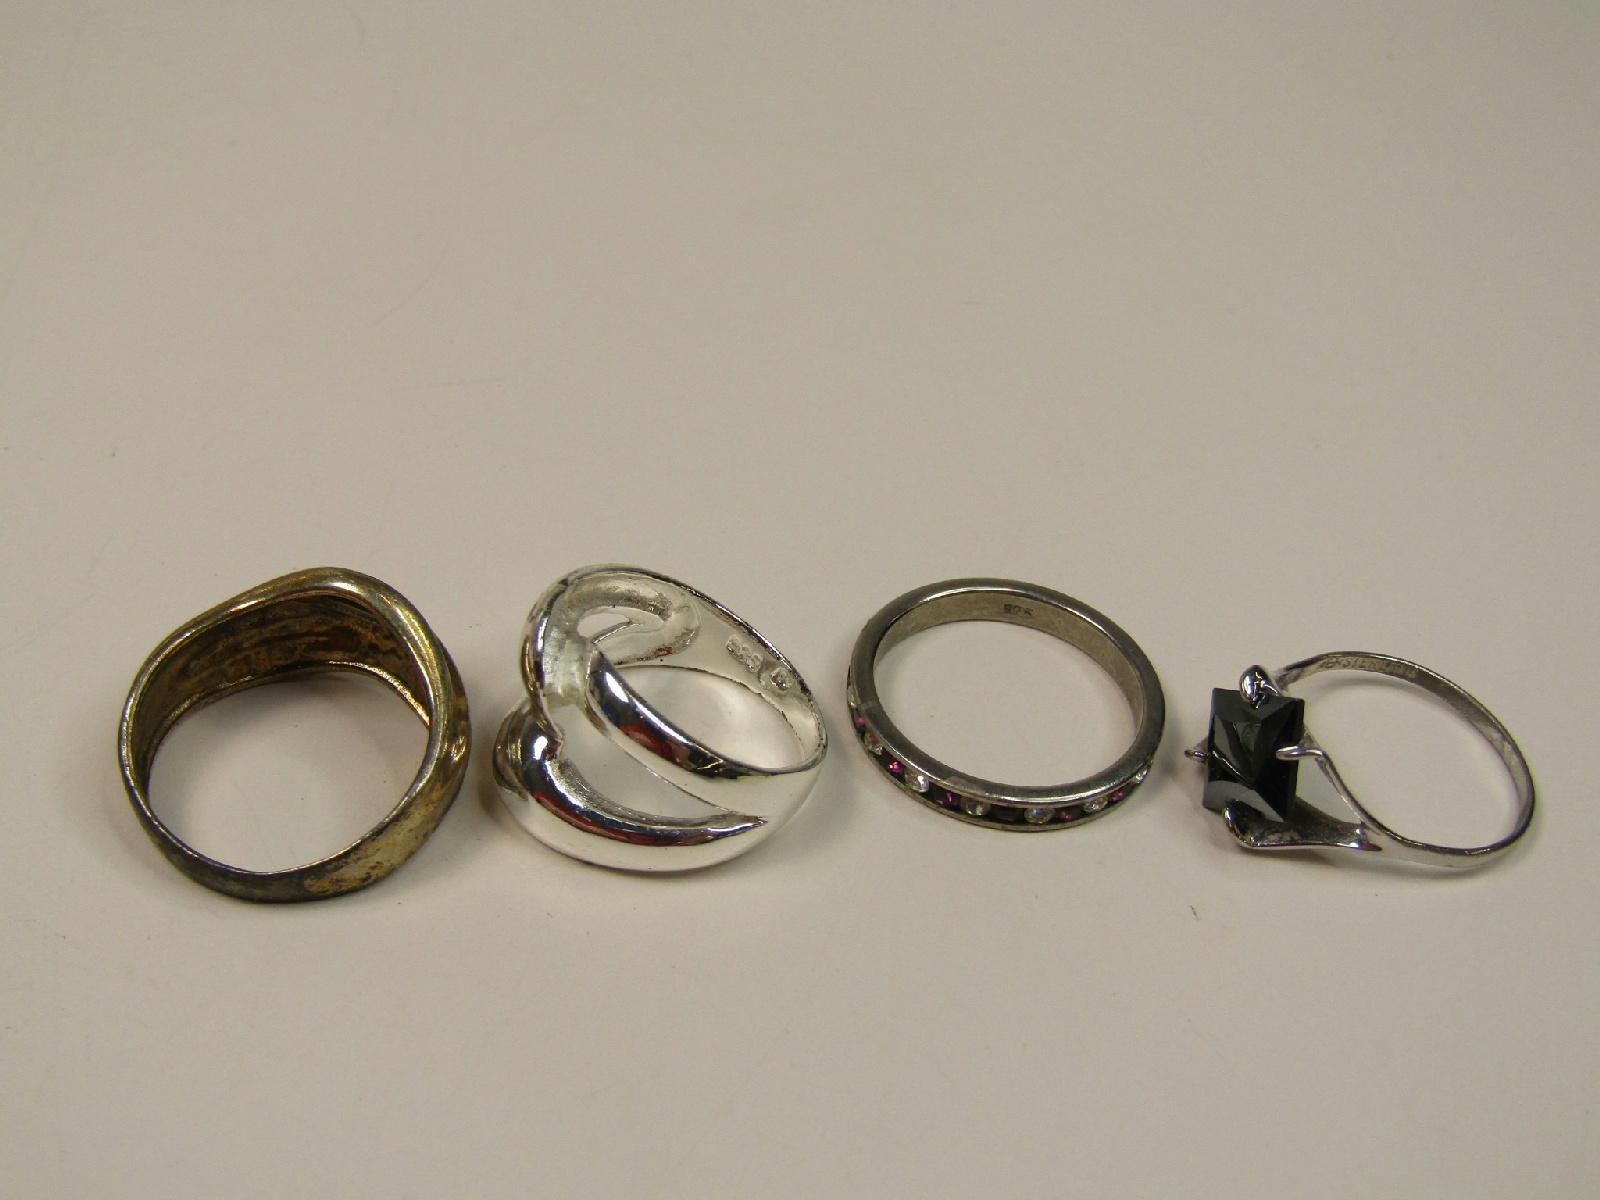 sterling silver failed magnet test jewelry lot necklaces